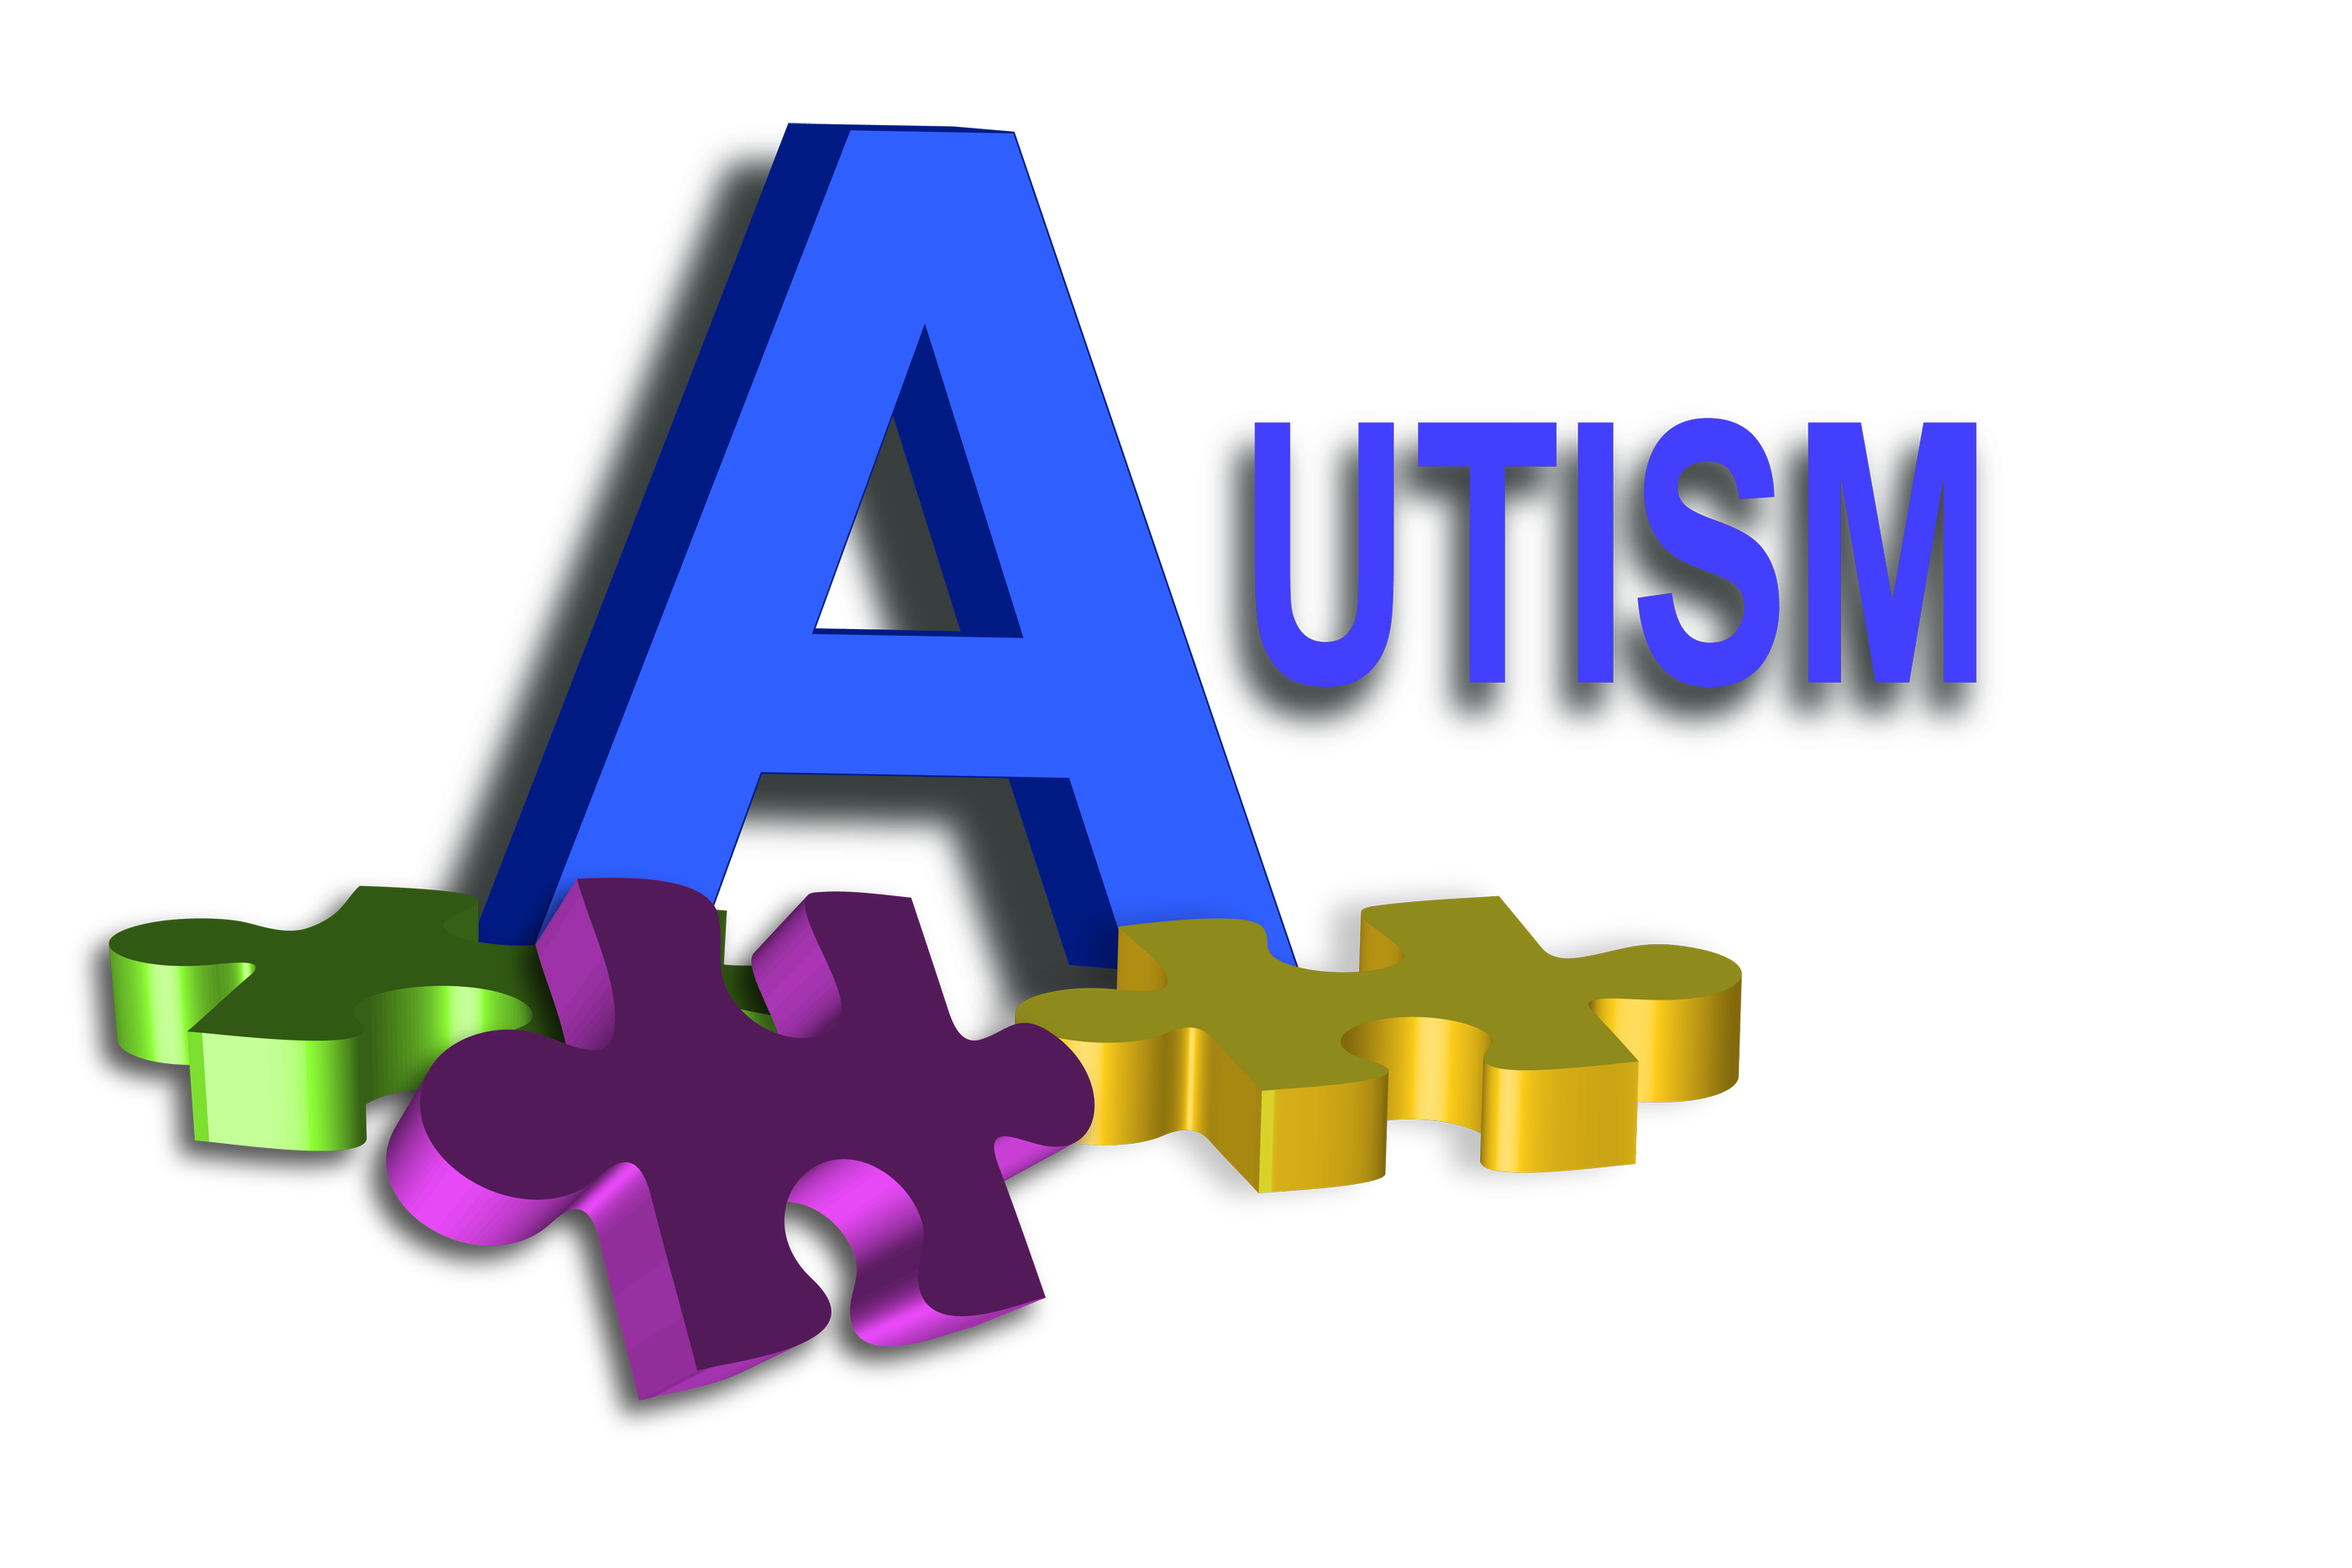 My Life with Autism is a Challenging Puzzle